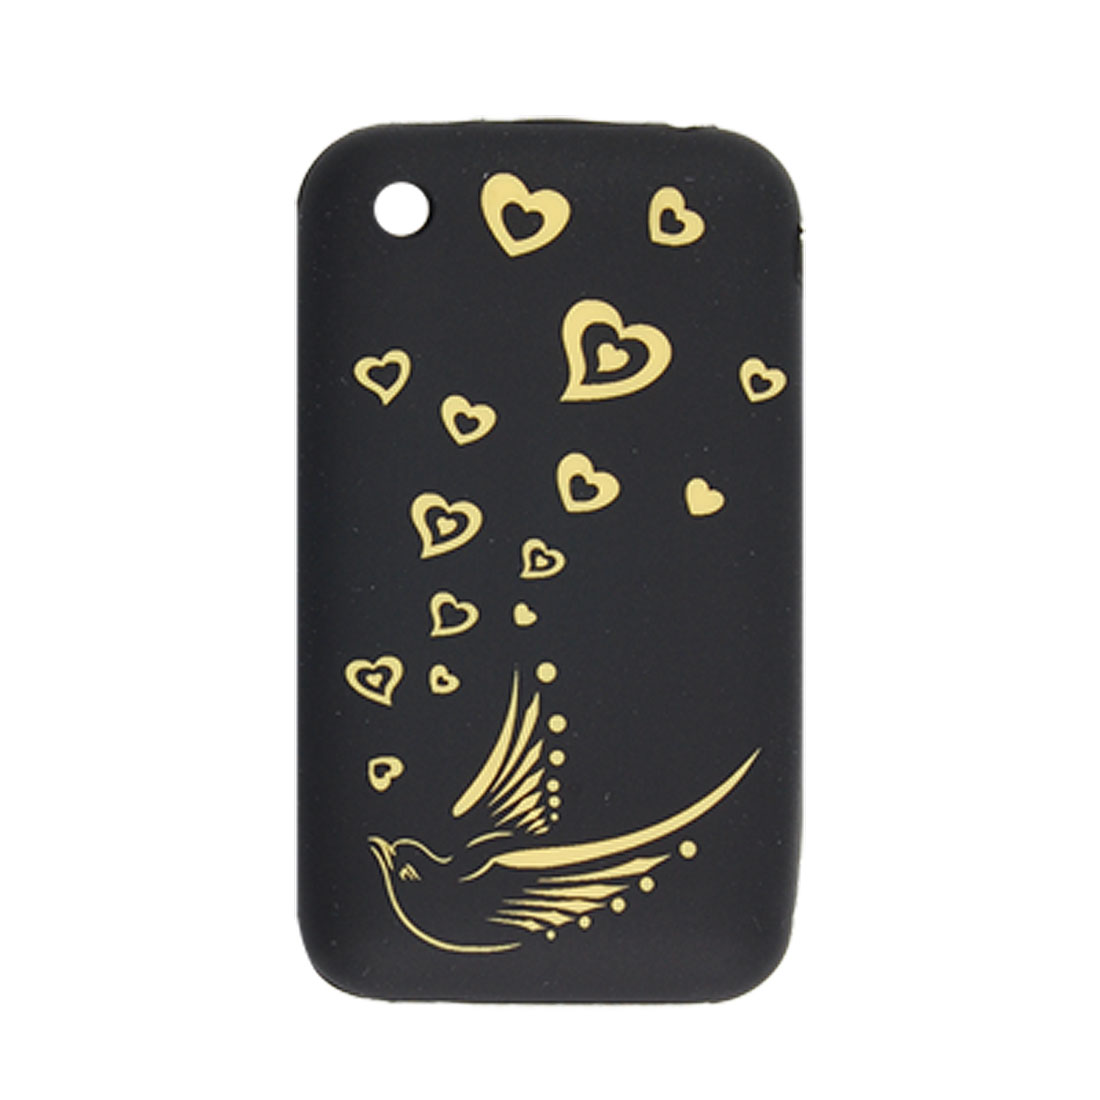 Cut Yellow Bird and Hearts Pattern Black Silicone Case for iPhone 3G